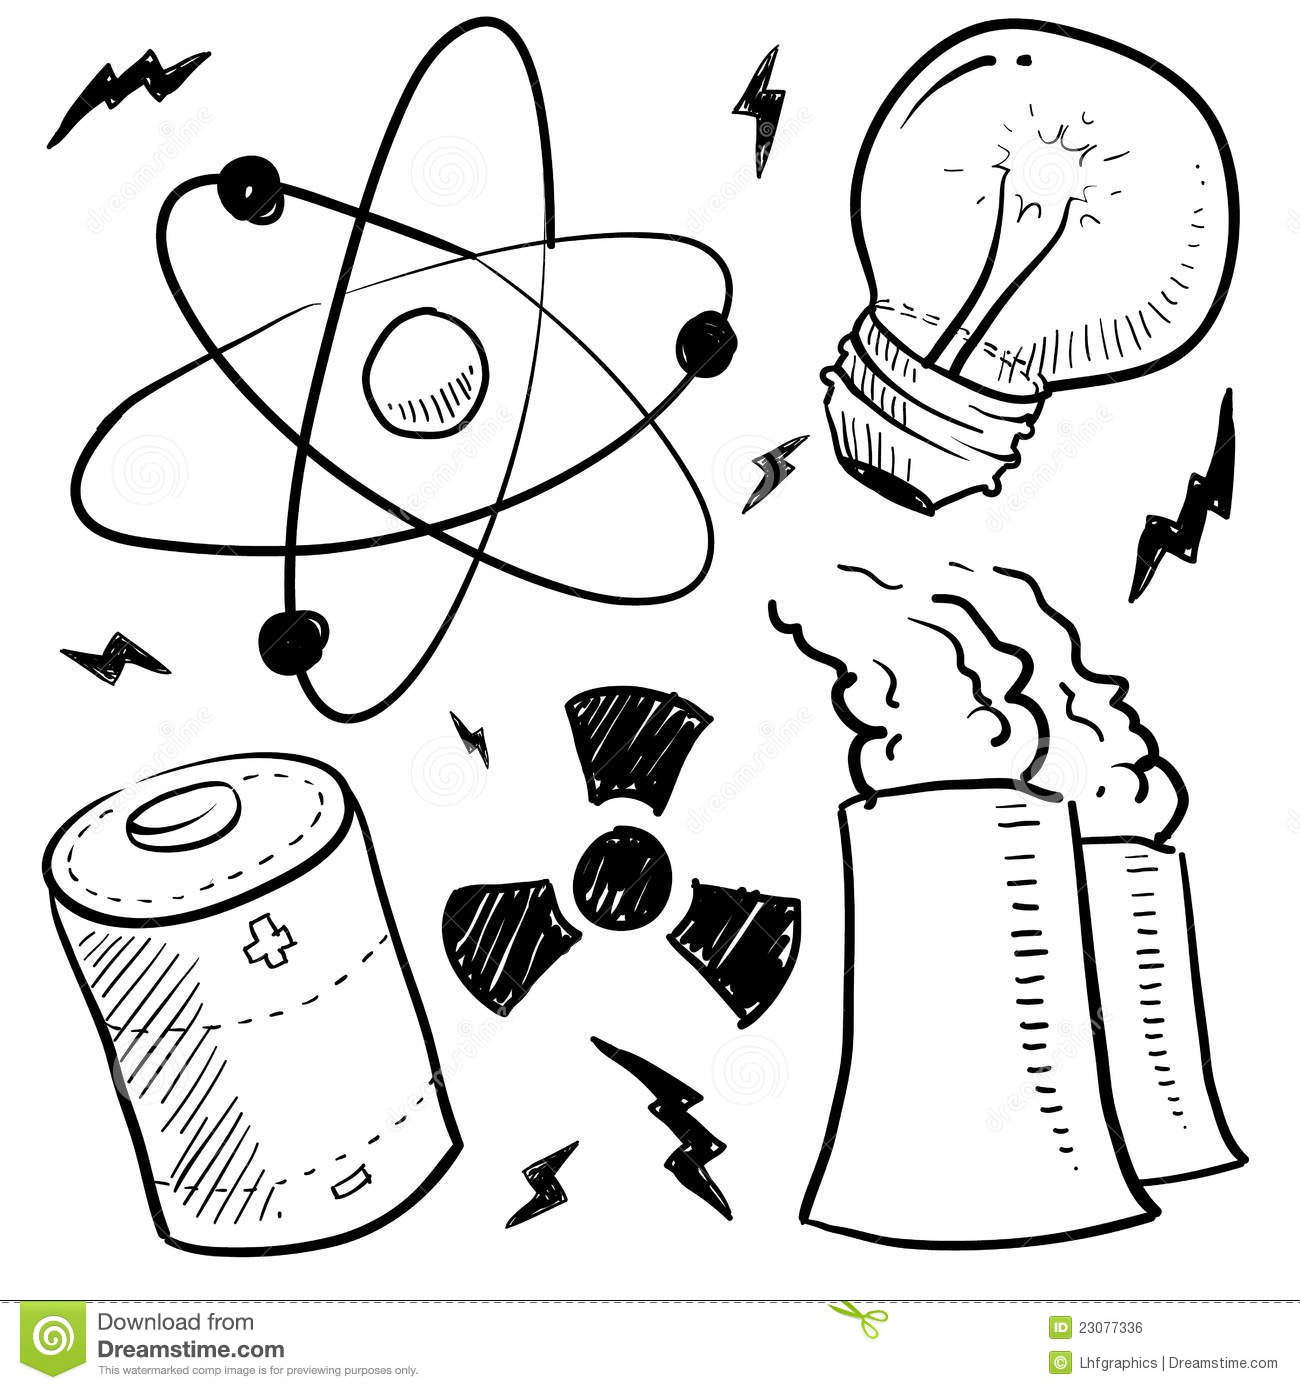 Royalty Free Stock Image Nuclear Power Objects Sketch Image23077336 on battery light